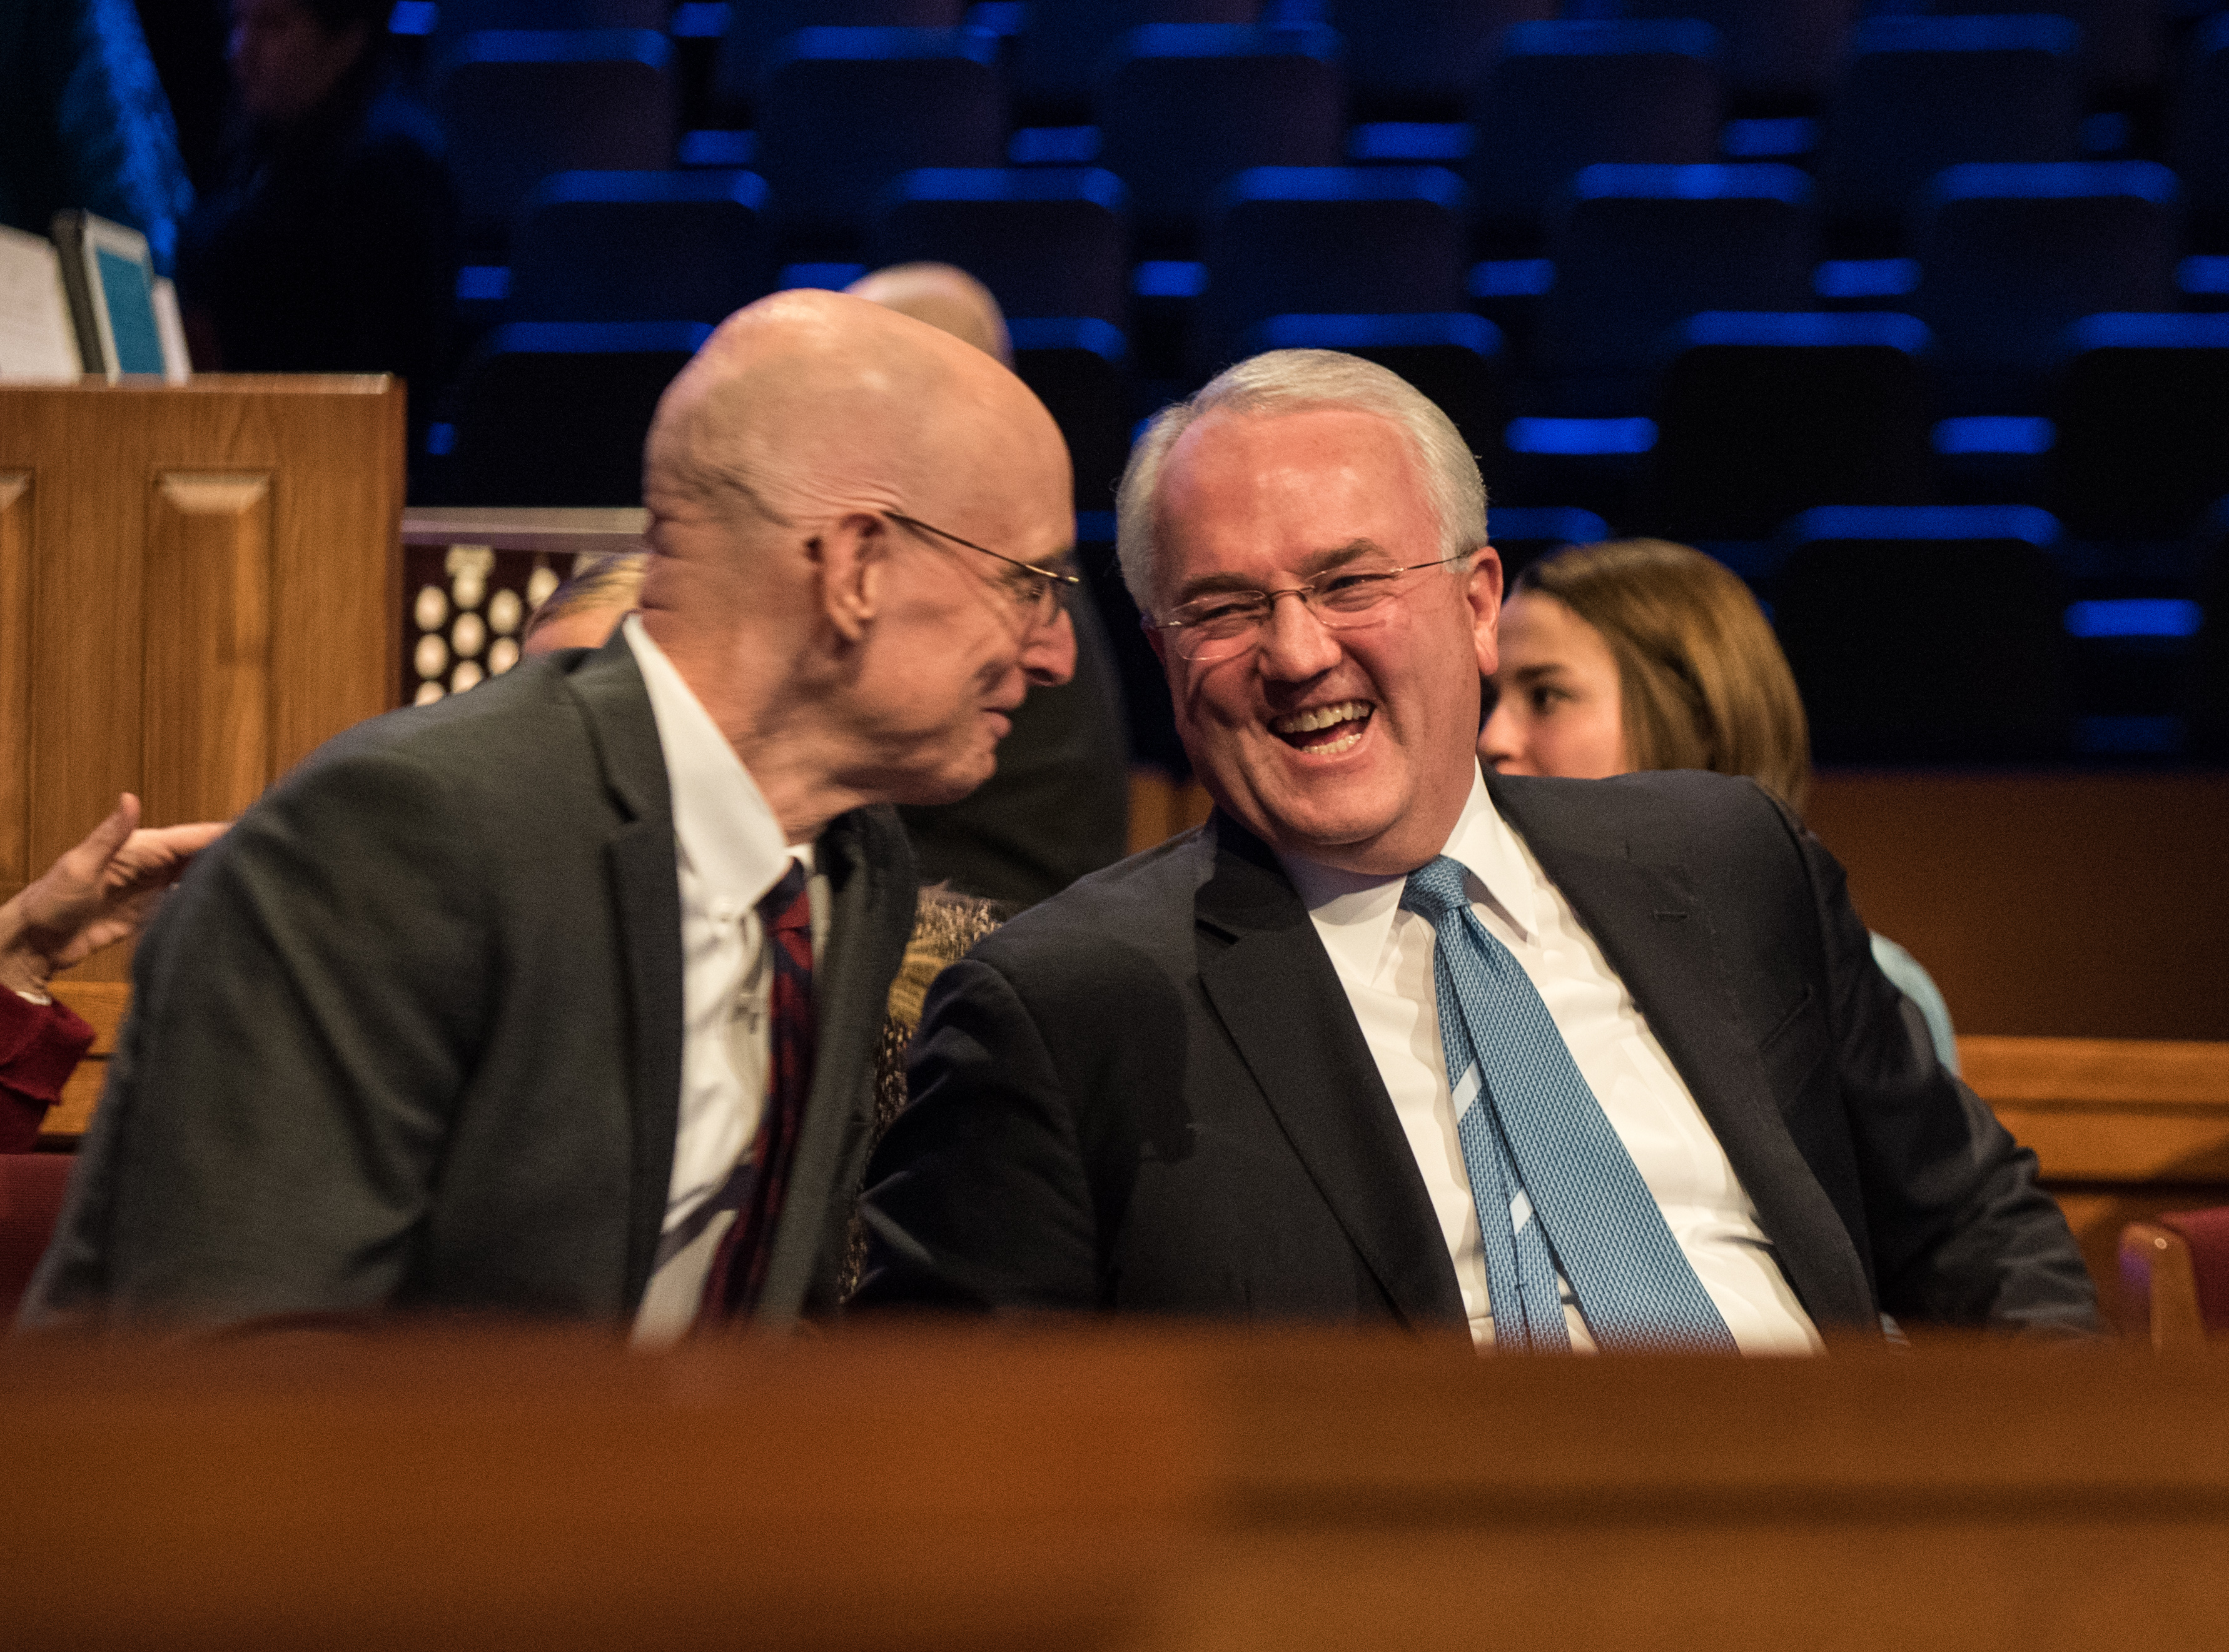 President Henry J. Eyring and Elder Jack N. Gerard interact with each other following a BYU-Idaho devotional on Oct. 29, 2019.